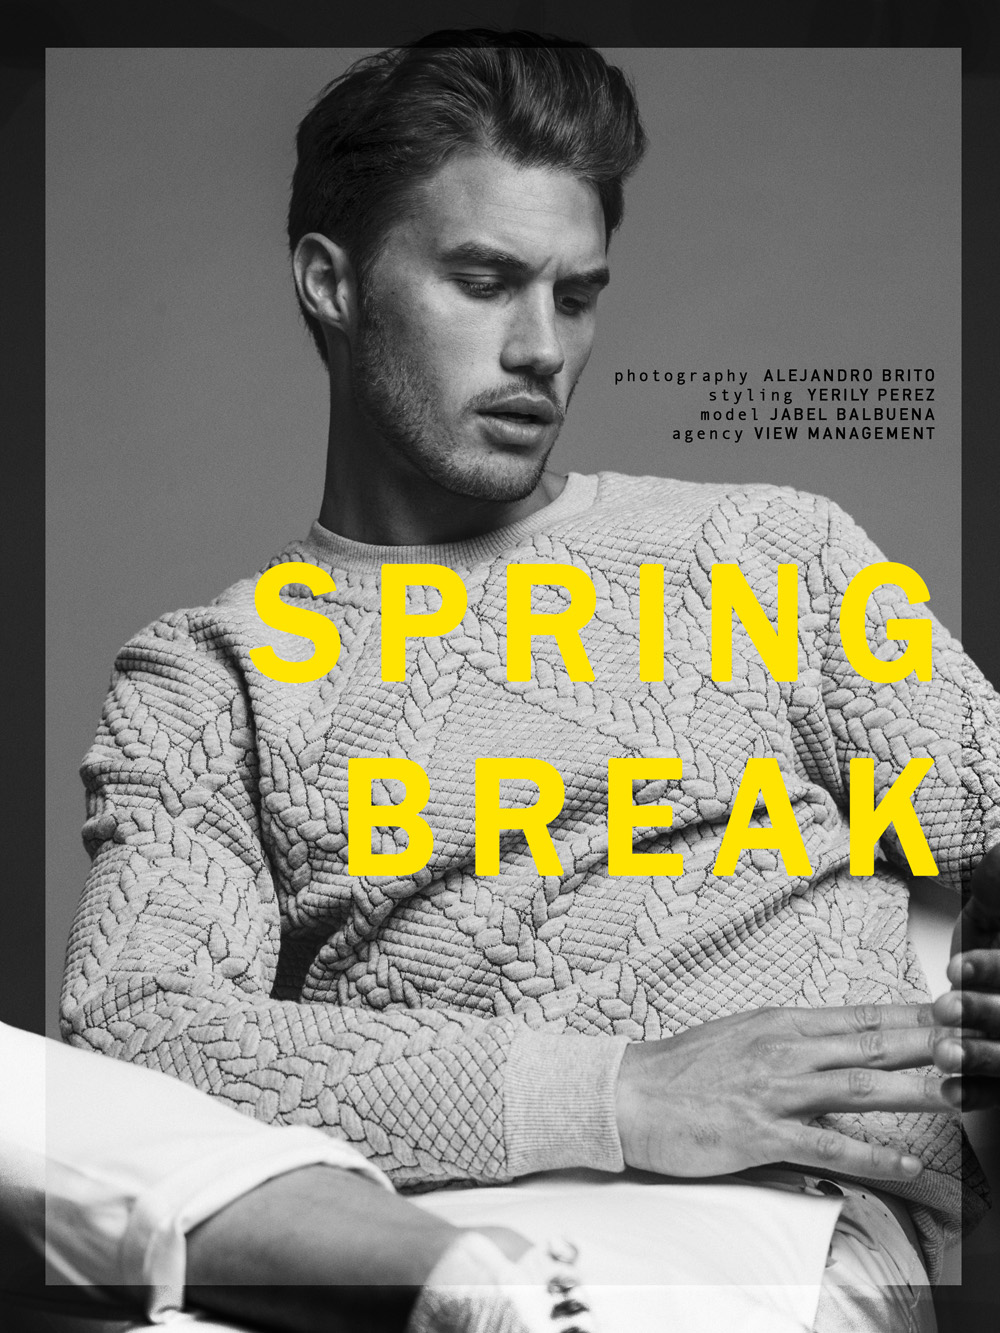 """Jabel Balbuena poses for a new story named """"Spring Break"""" pictured by Alejandro Brito and styled by Yerily Perez."""